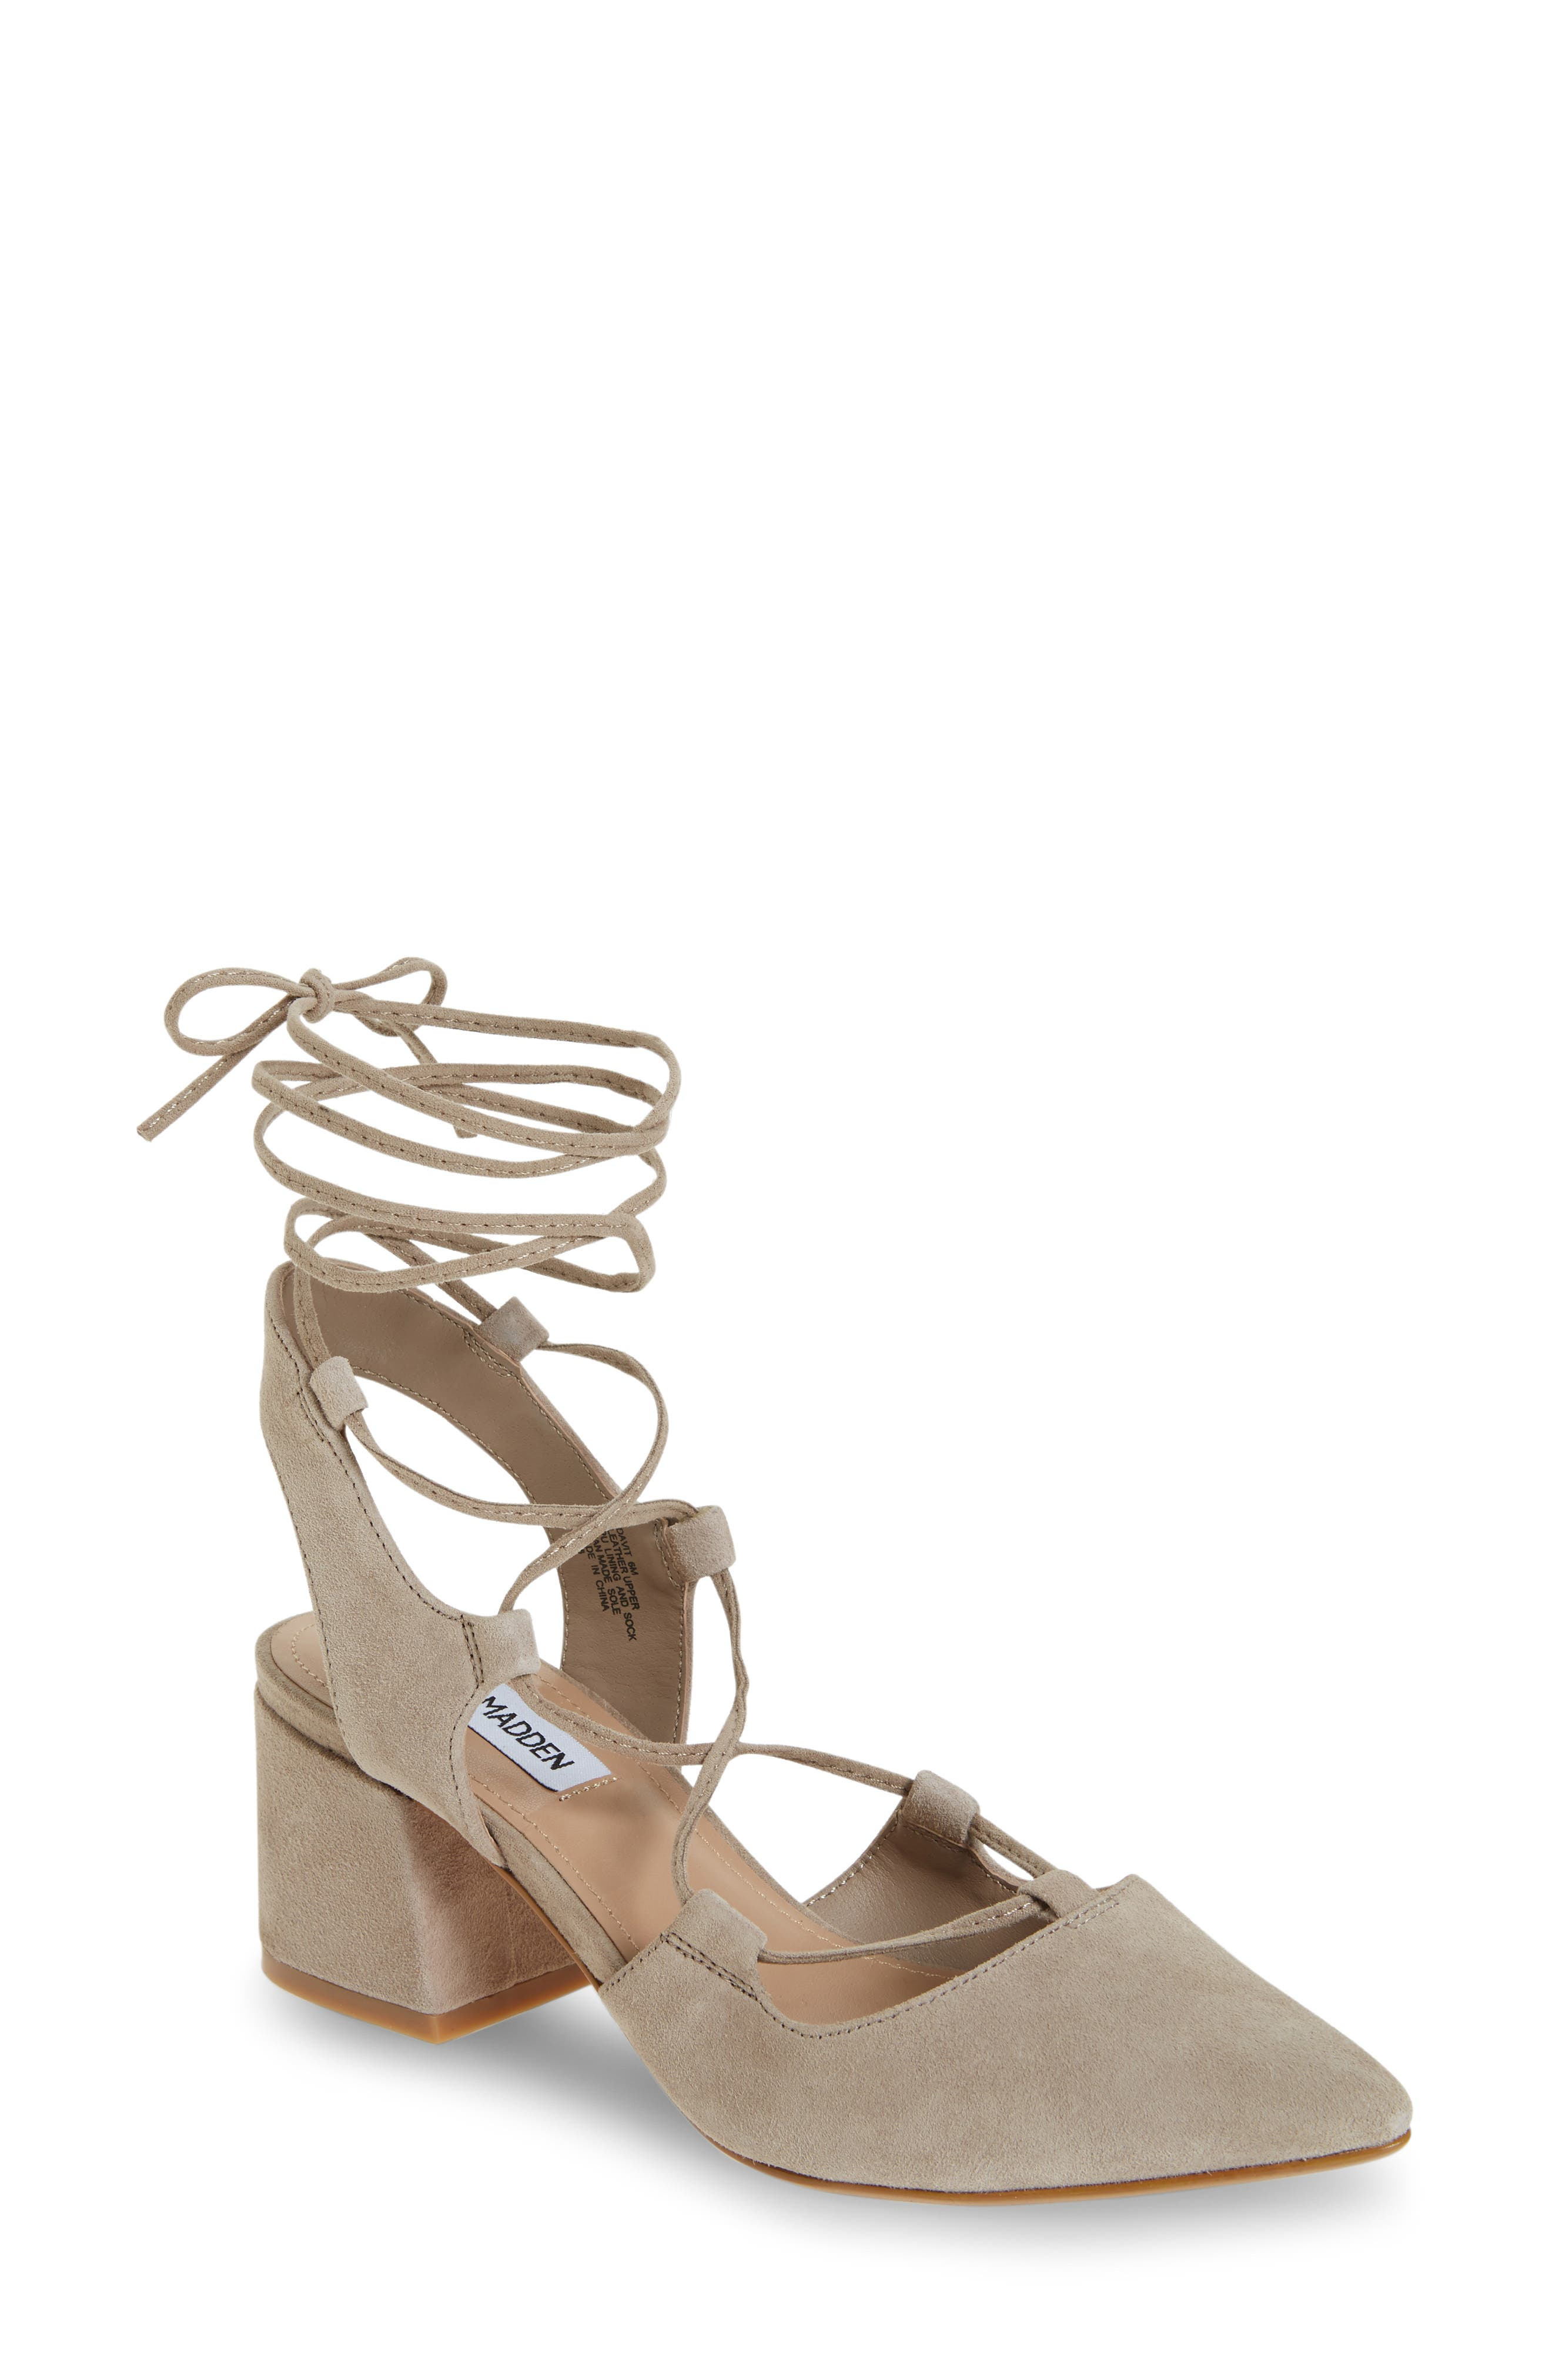 Alternate Image 1 Selected - Steve Madden Davit Lace-Up Pump (Women)